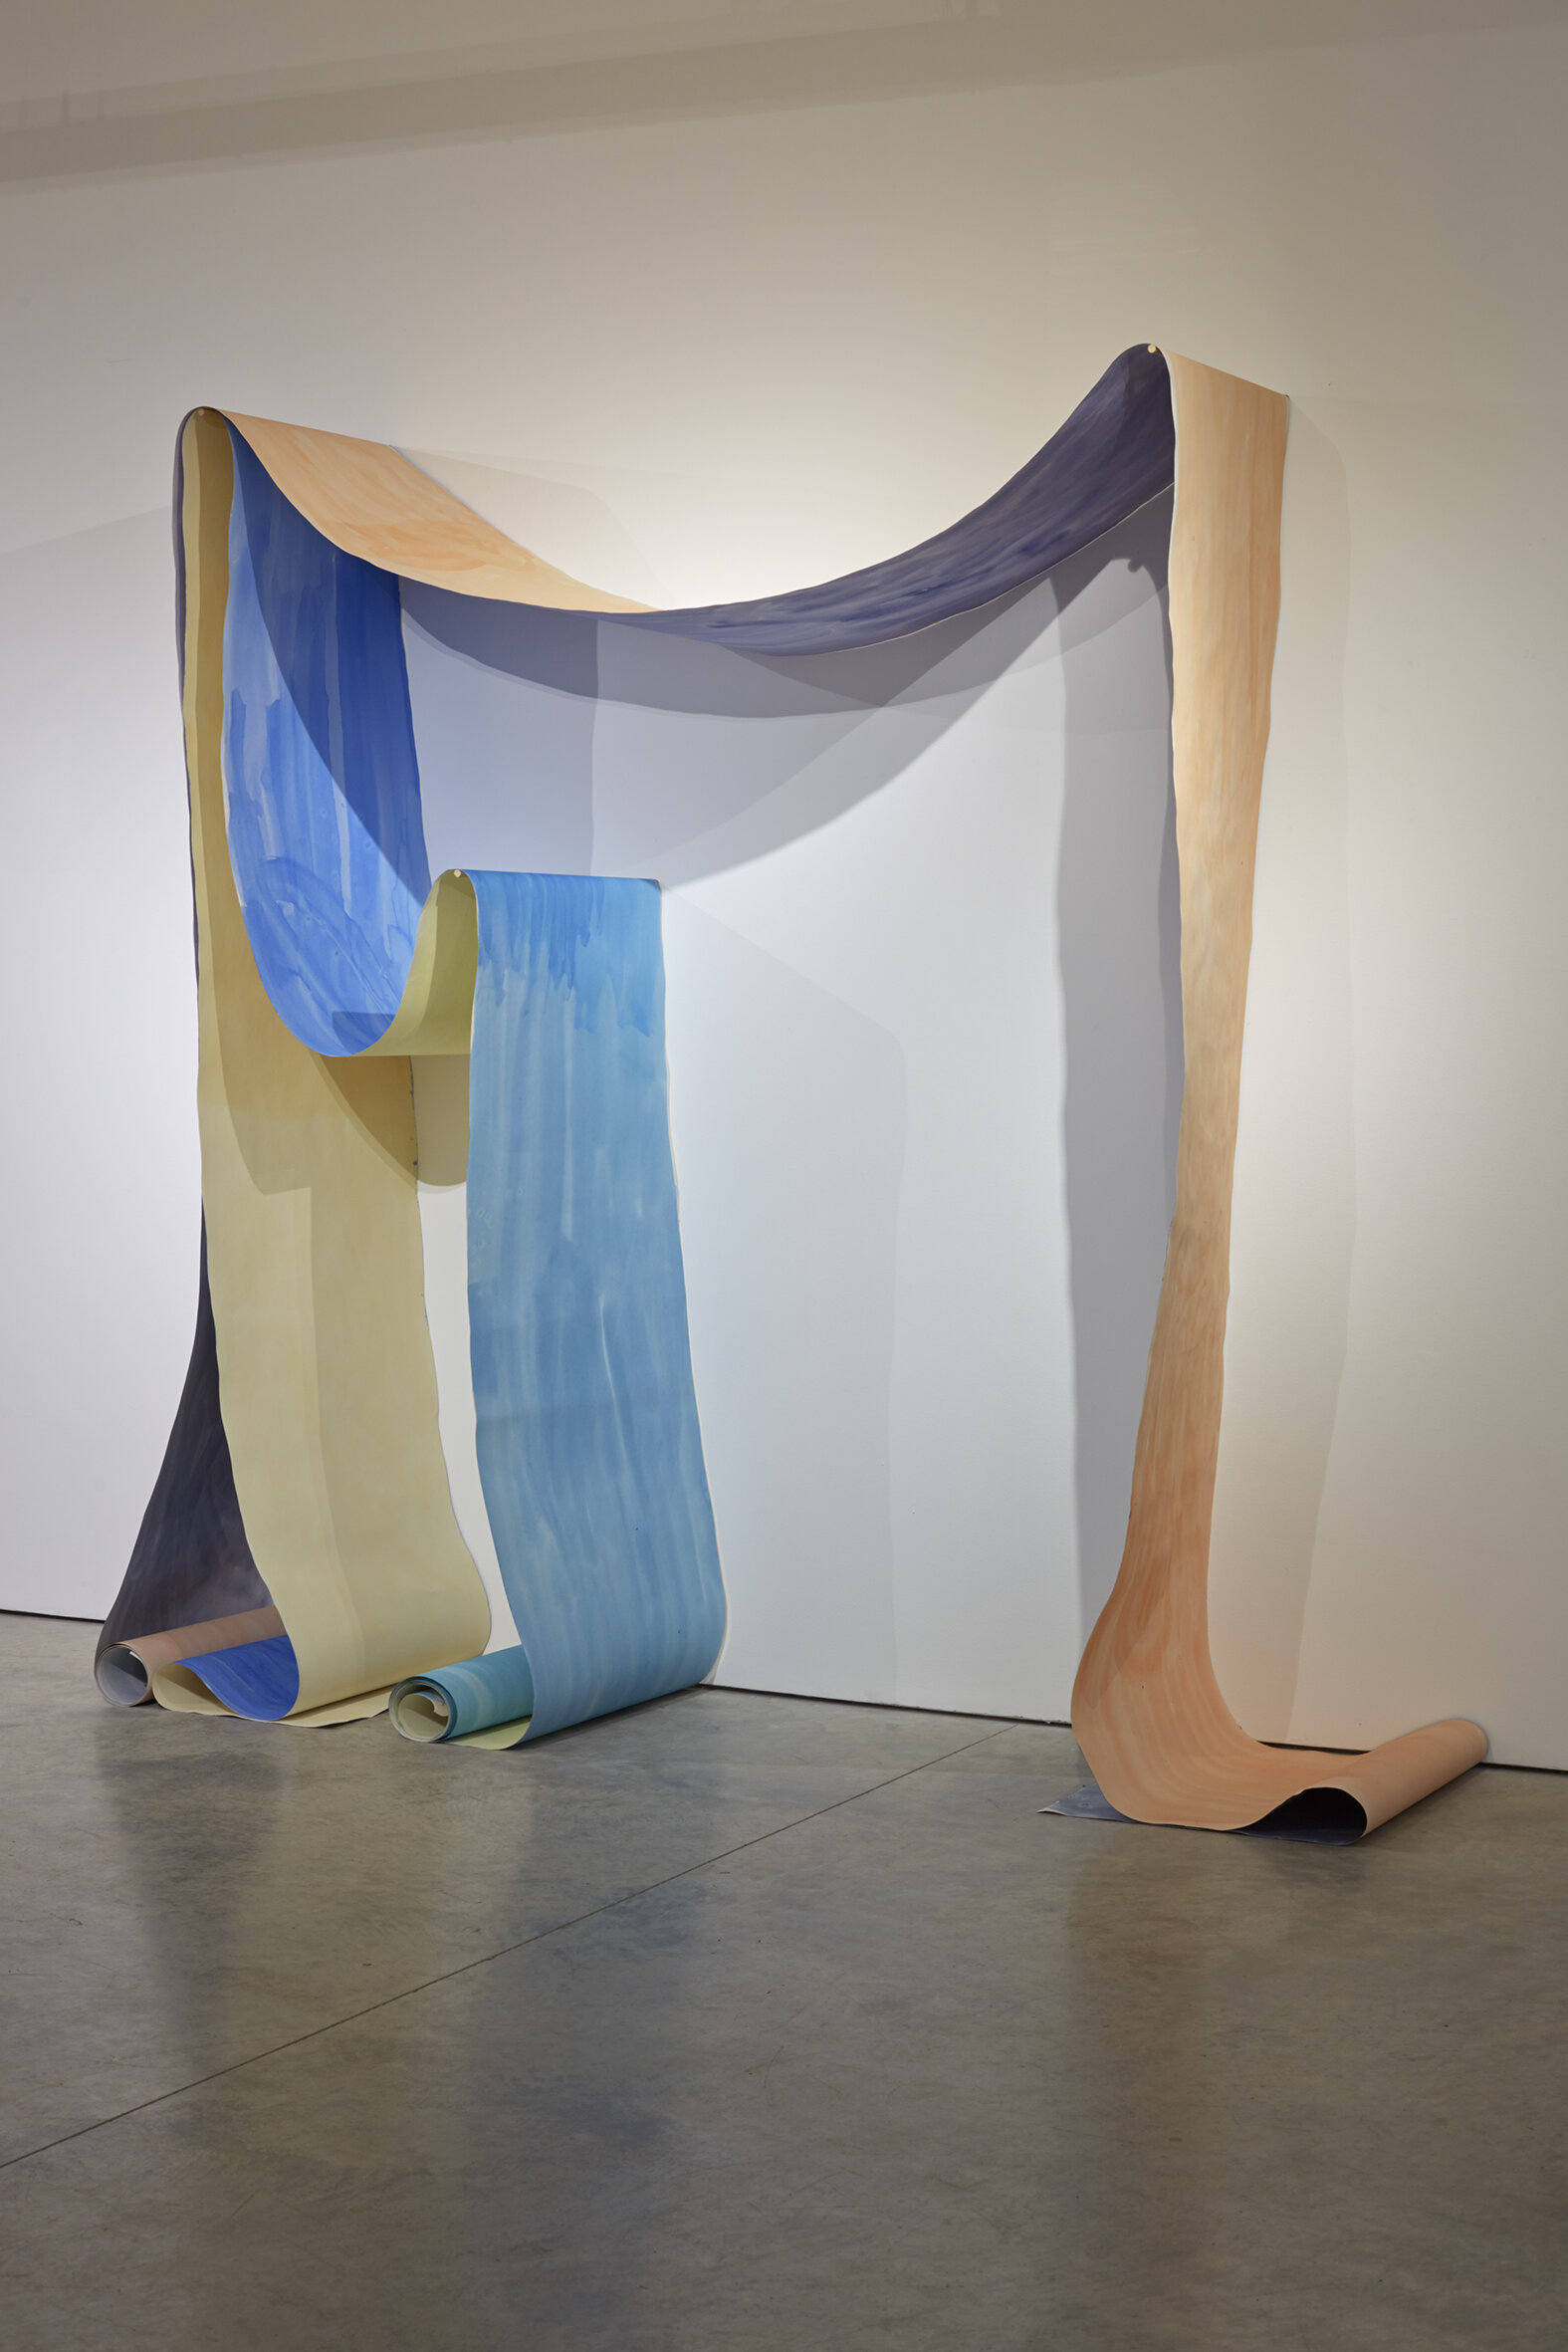 Let's sit down and talk about it .  Gerald Moore Gallery, London, UK, 2014. David Ben White, Fay Nicolson